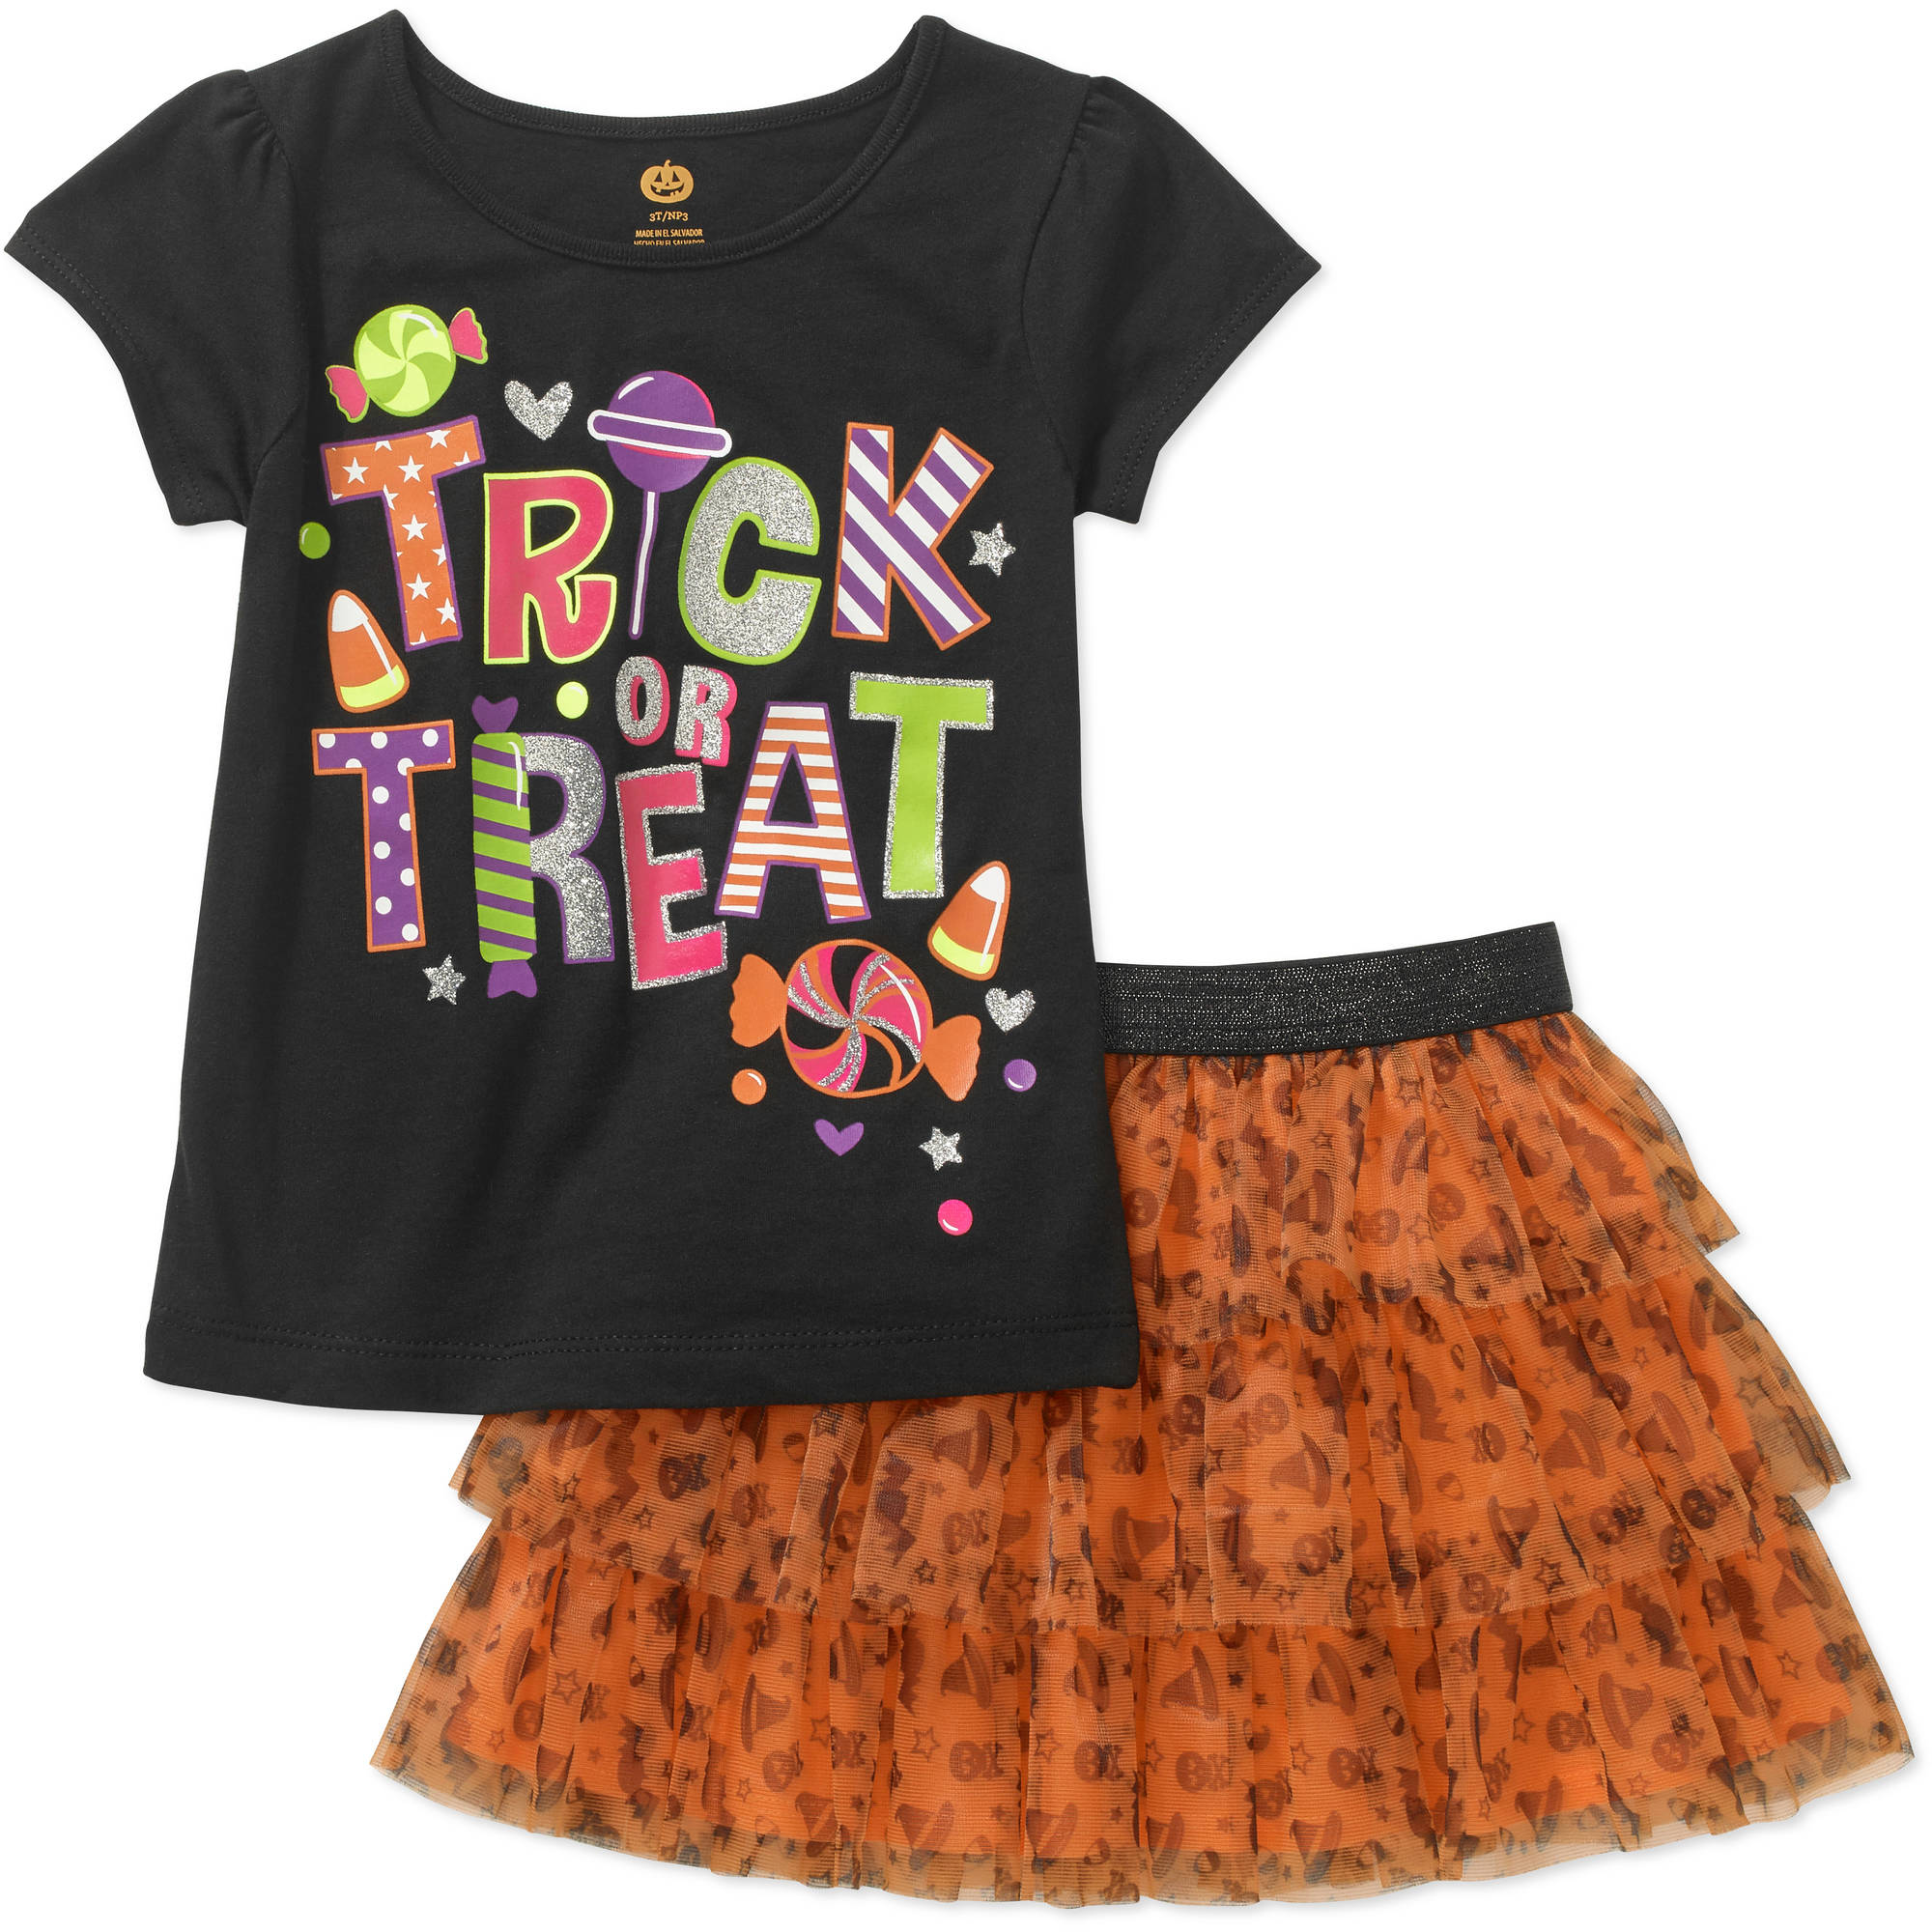 Baby Toddler Girls' Halloween Short Sleeve Graphic Tee and Tutu 2-Piece Outfit Set